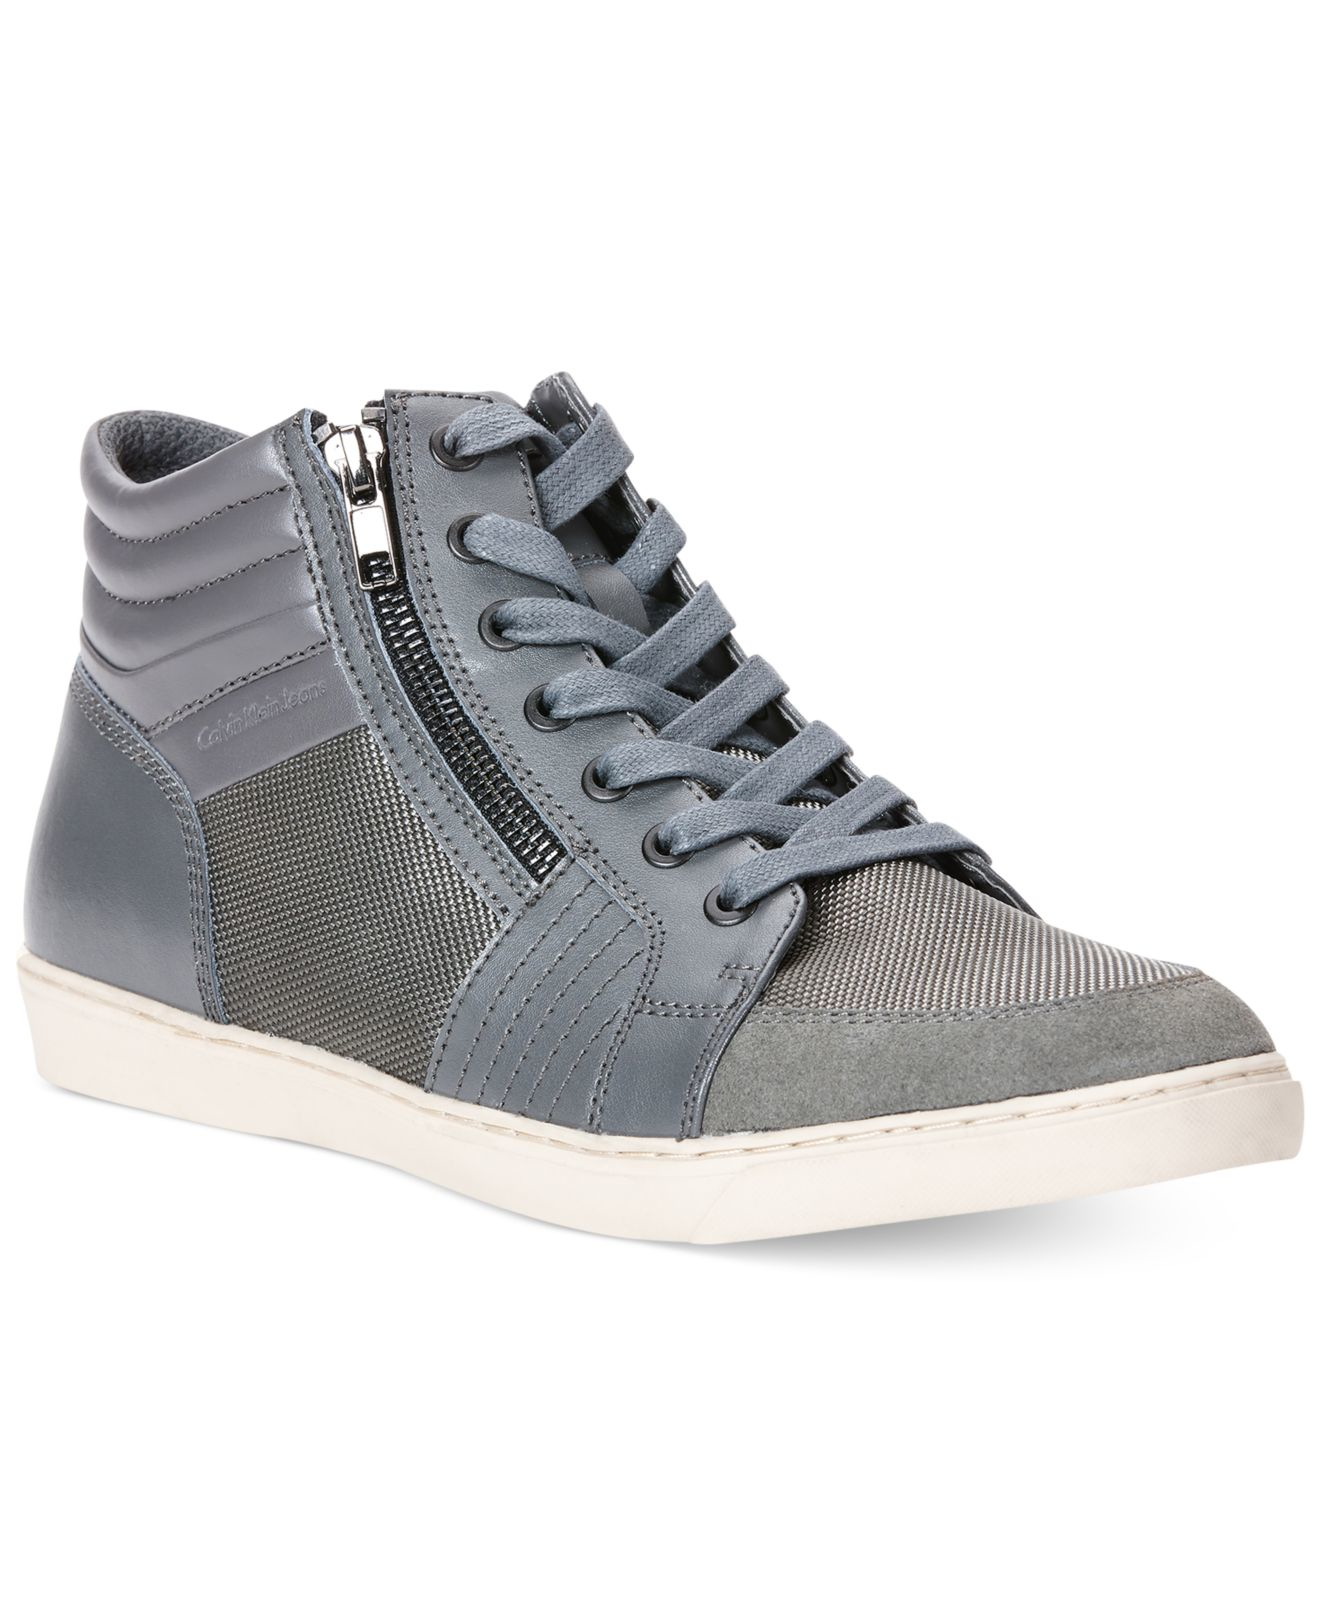 calvin klein jeans zeel sneakers in gray for men lyst. Black Bedroom Furniture Sets. Home Design Ideas